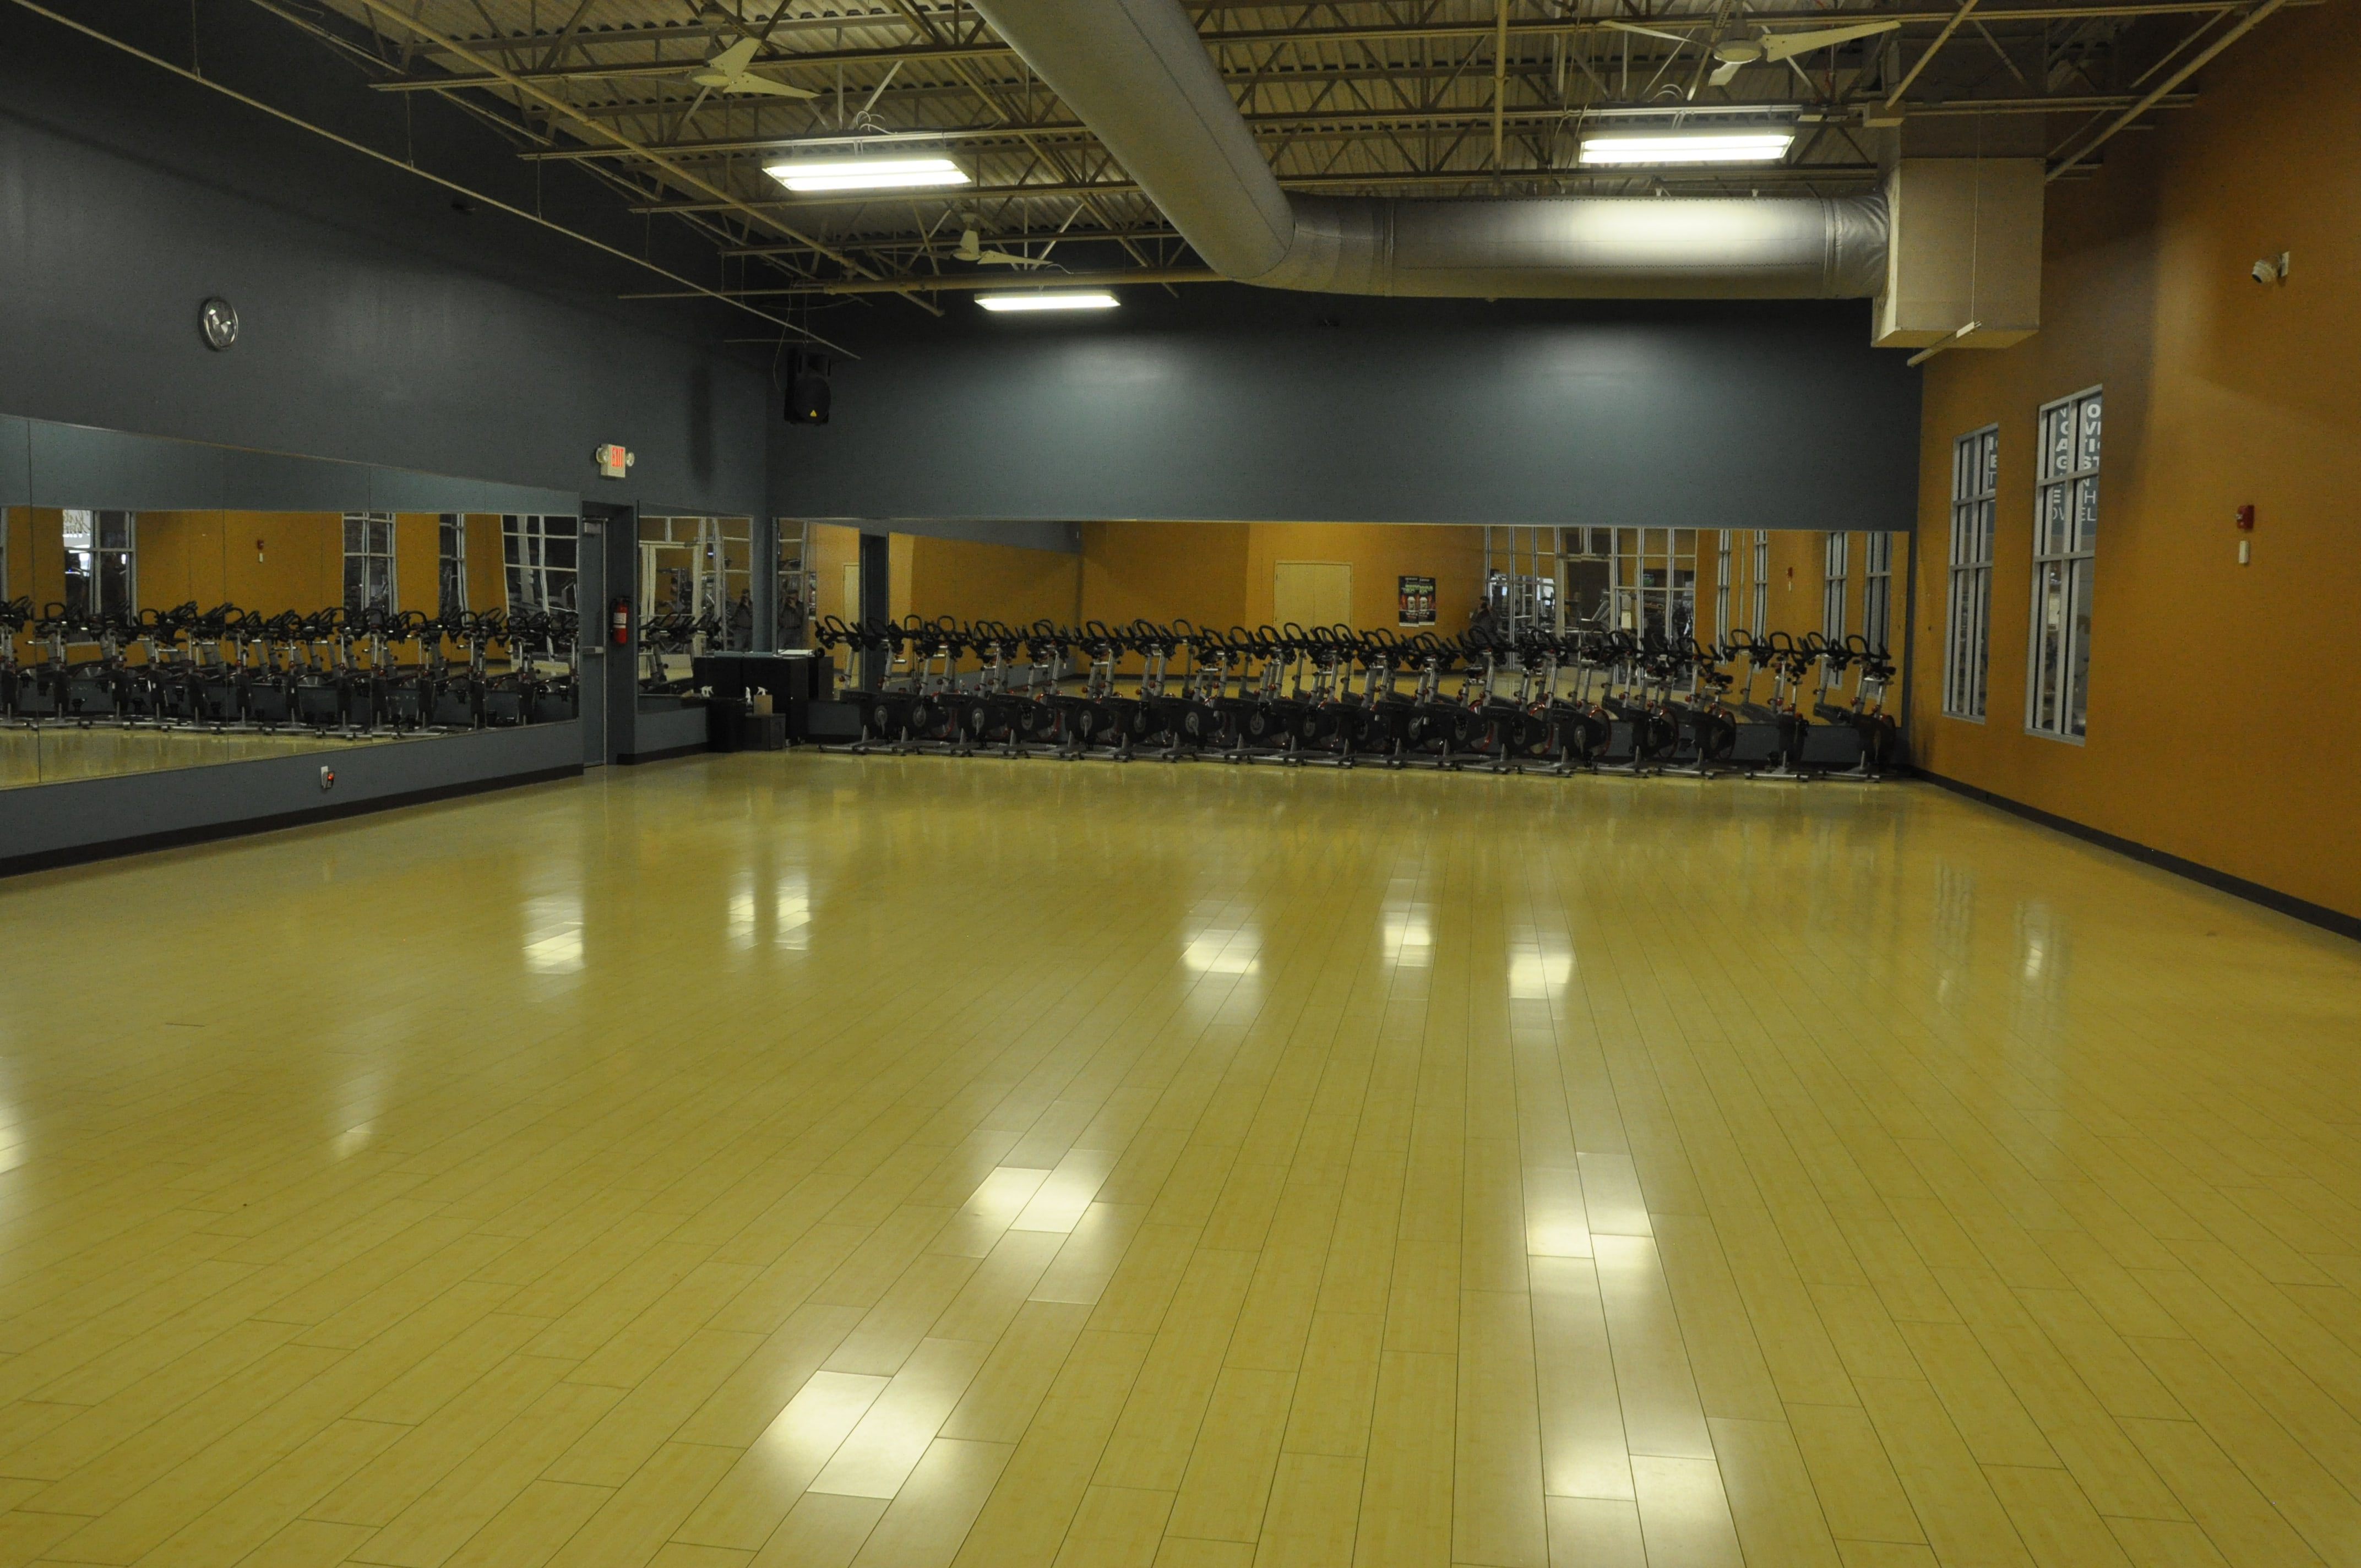 Club Fitness image 4